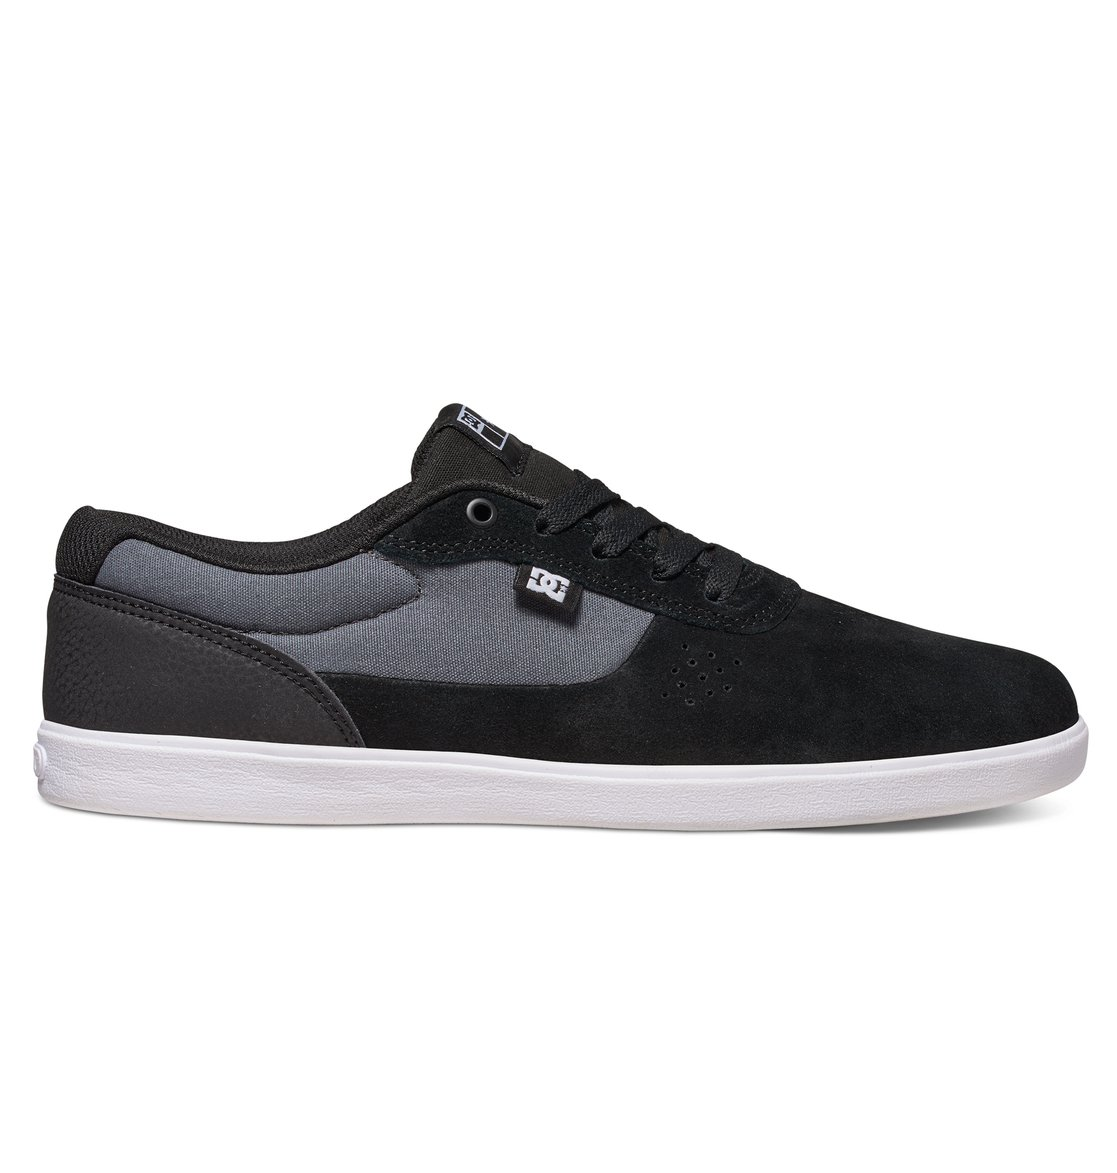 18c6ede9e4 Switch S Lite - Low-Top Shoes